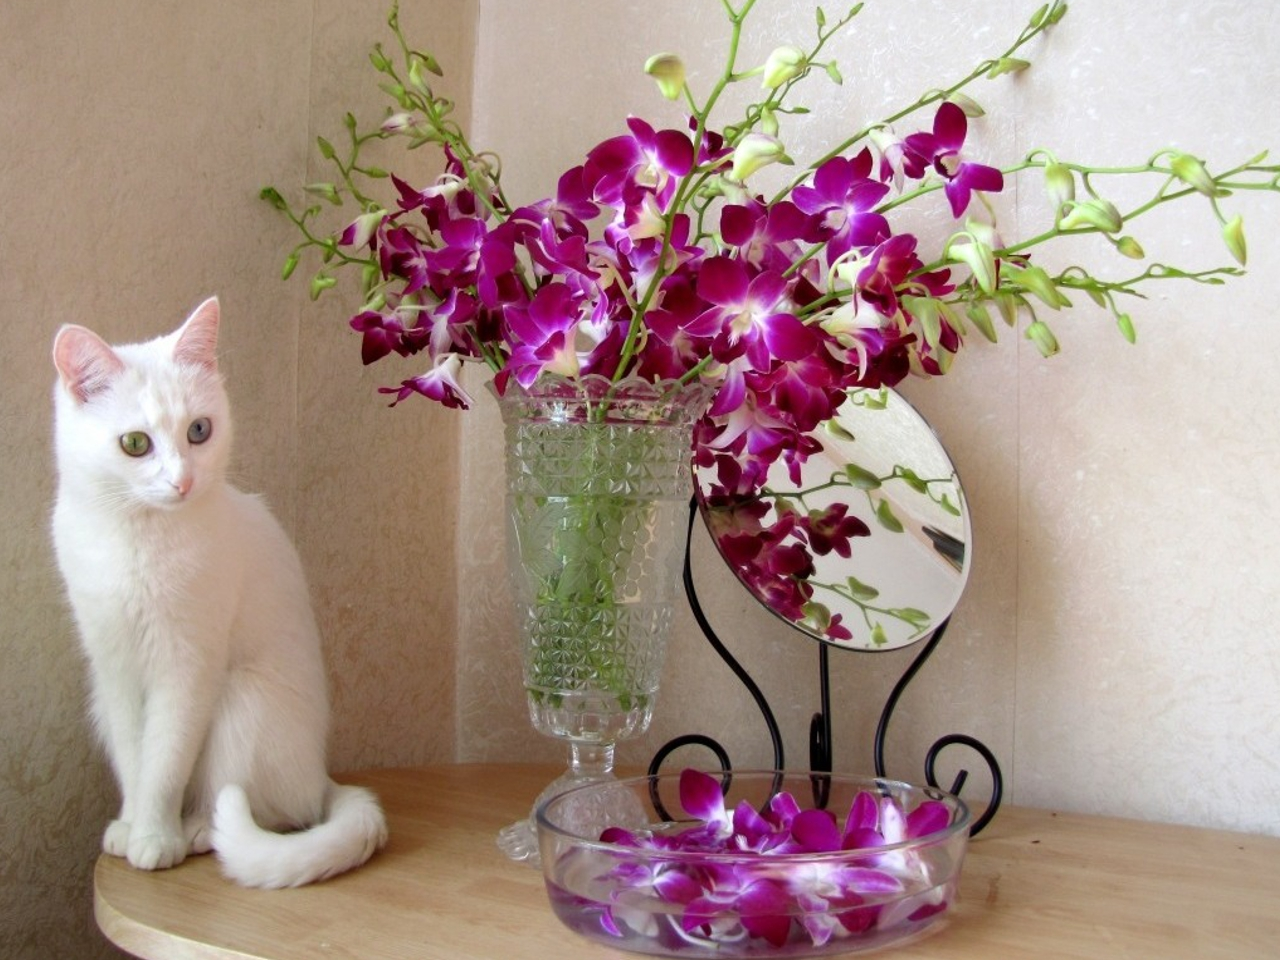 , Cat, Cat Face, Cats, Colorful, Colors, Cute, Eyes, Face, Flowers Wallpaper